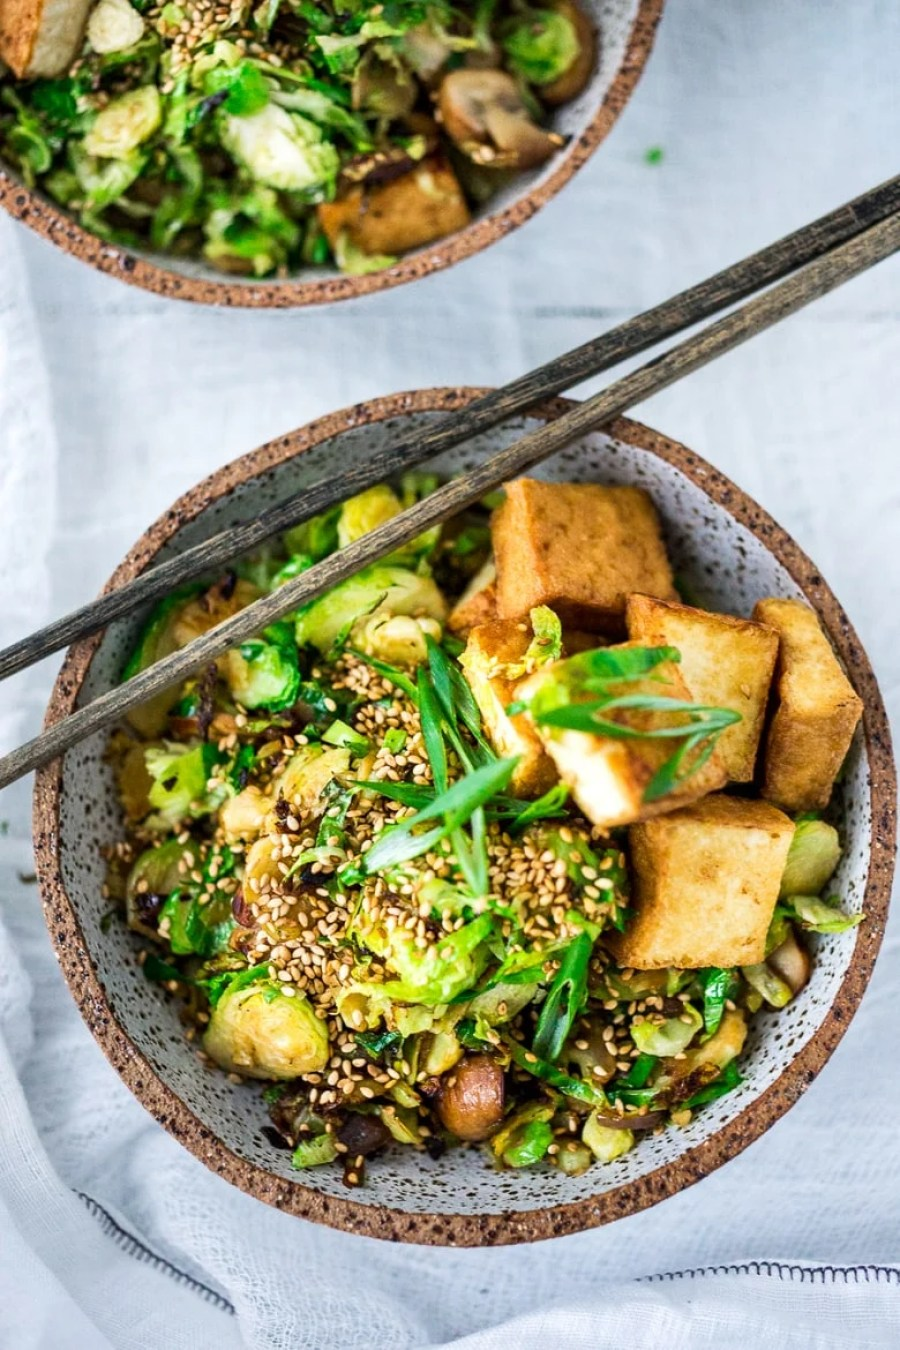 EAT CLEAN with these 20 simple Plant-Based Meals!!!   Sesame Brussel Sprouts and Tofu Bowl- with mushrooms, scallions and toasted sesame seeds. Vegan and Gluten-free.   www.feastingathome.com